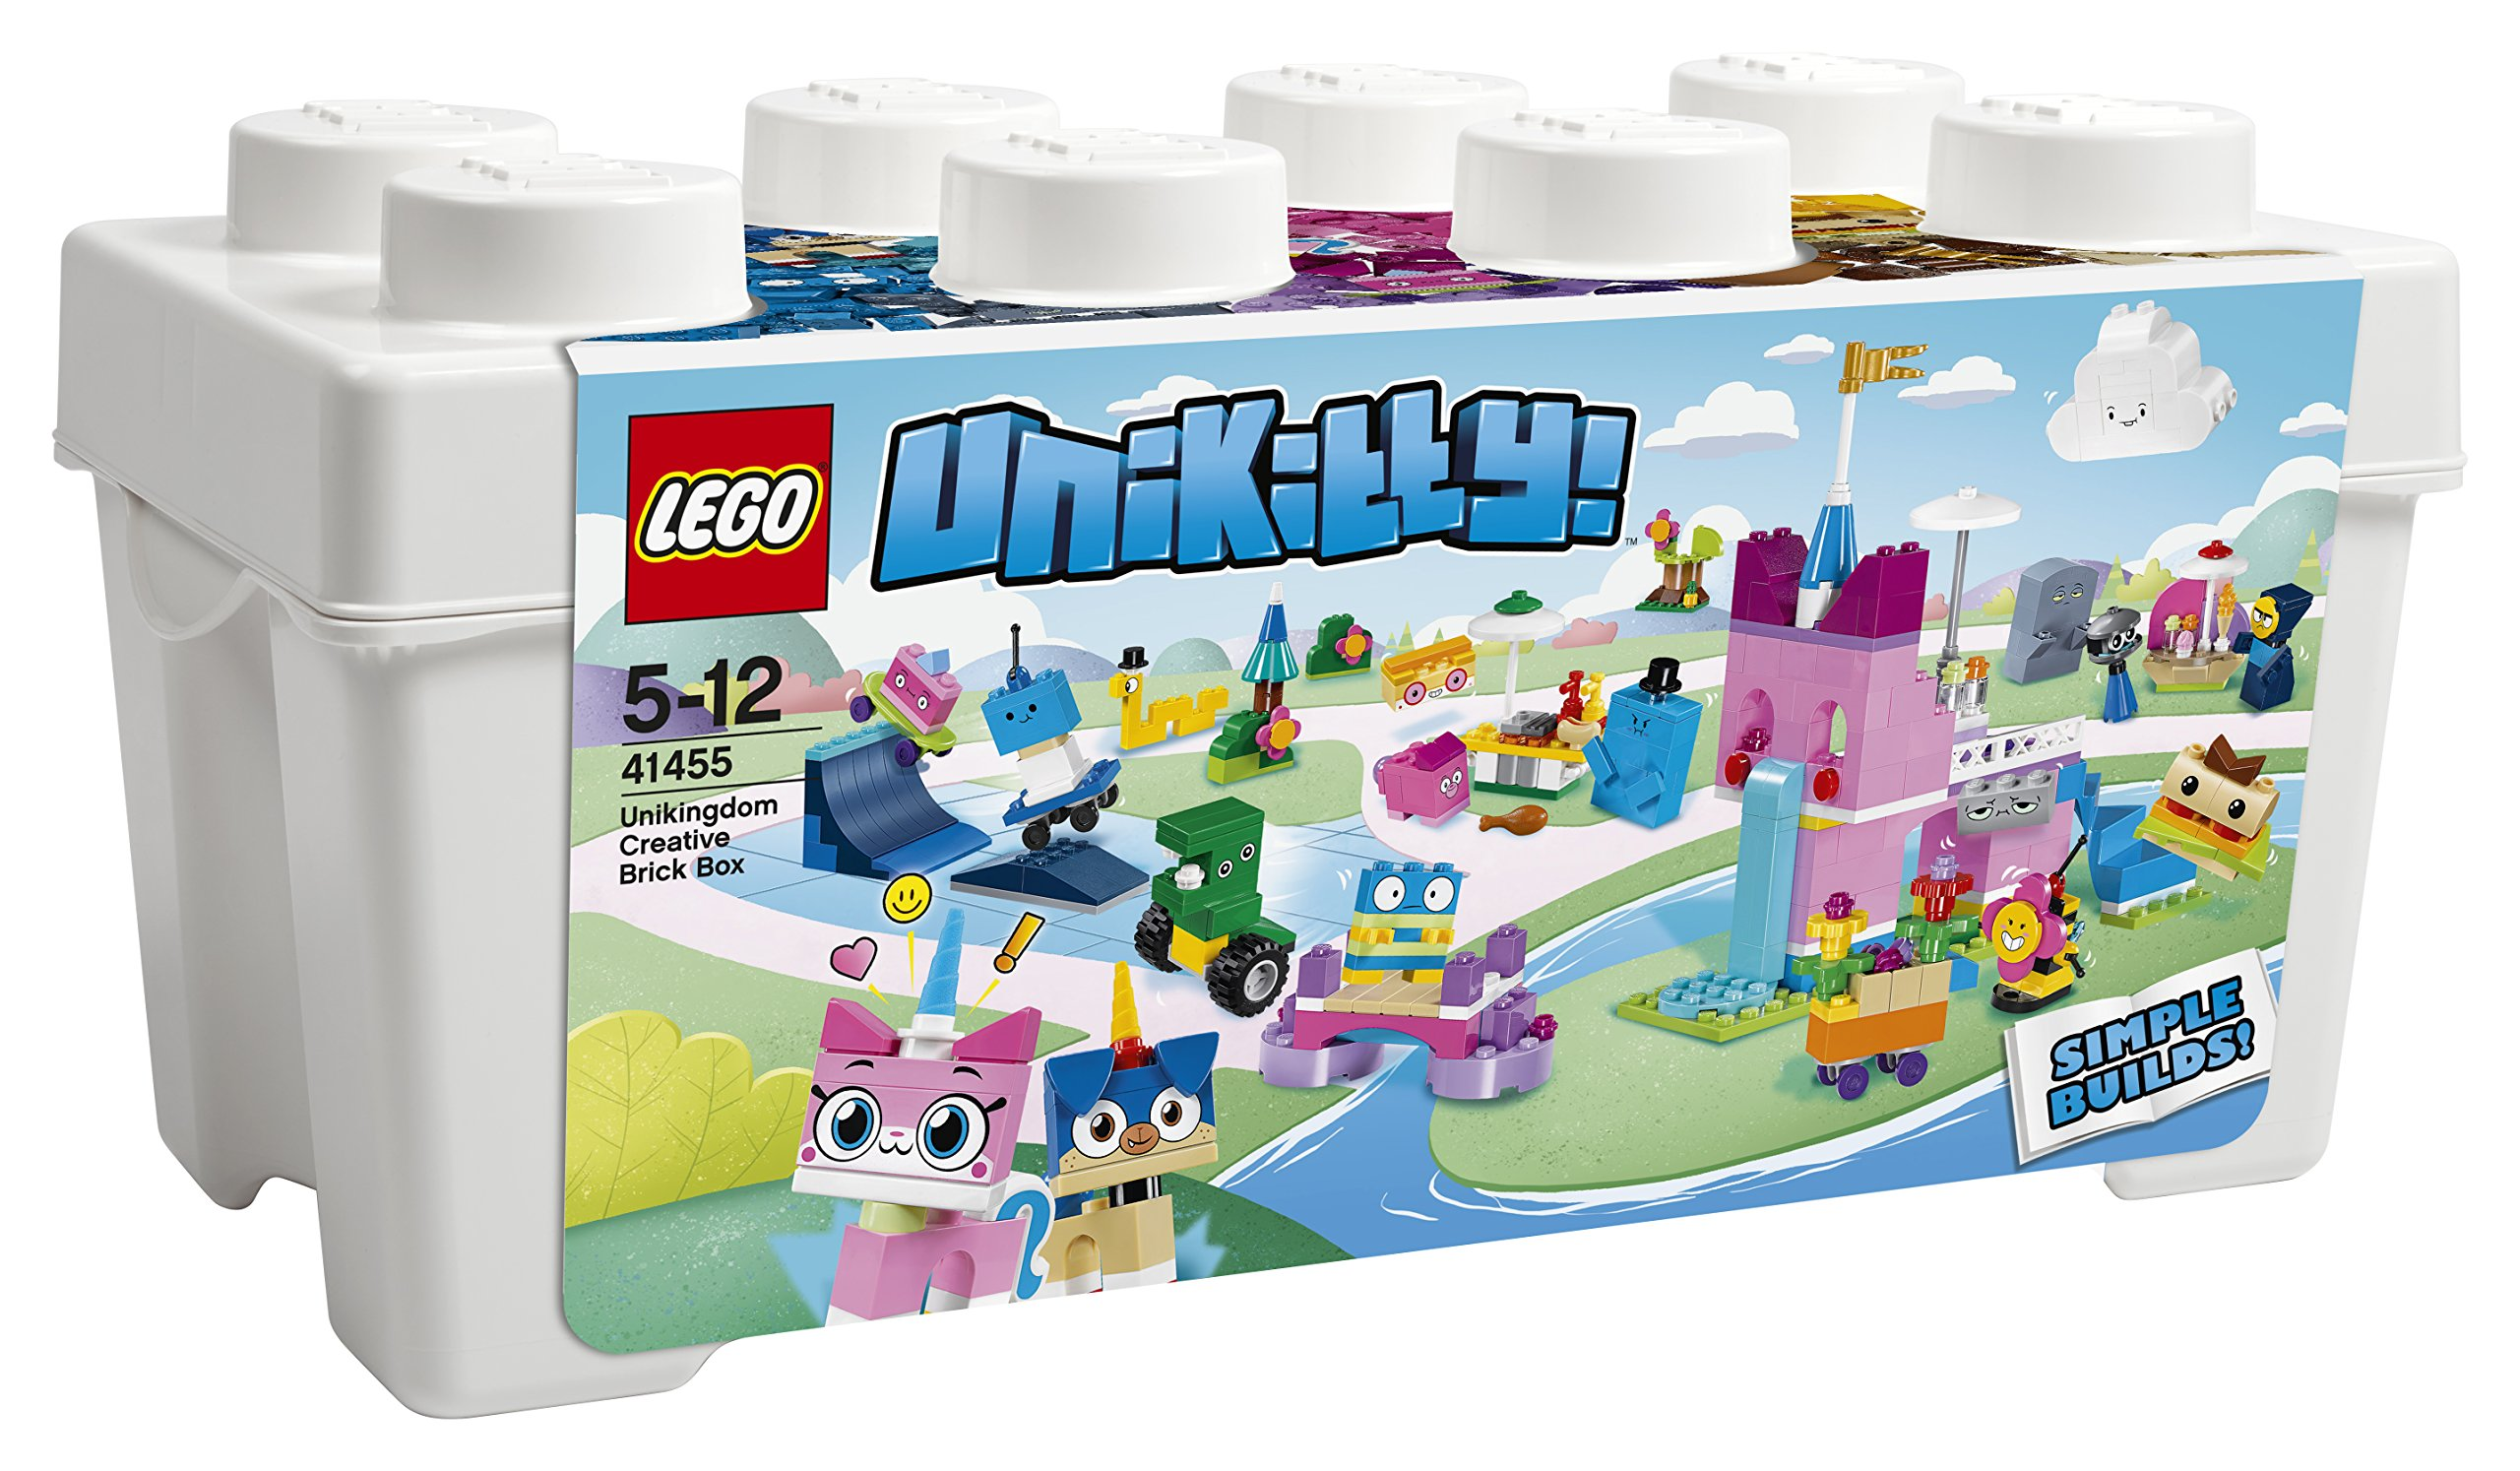 LEGO-41455-Brickset-with-17-Unikitty-Figures-and-Toy-Storage